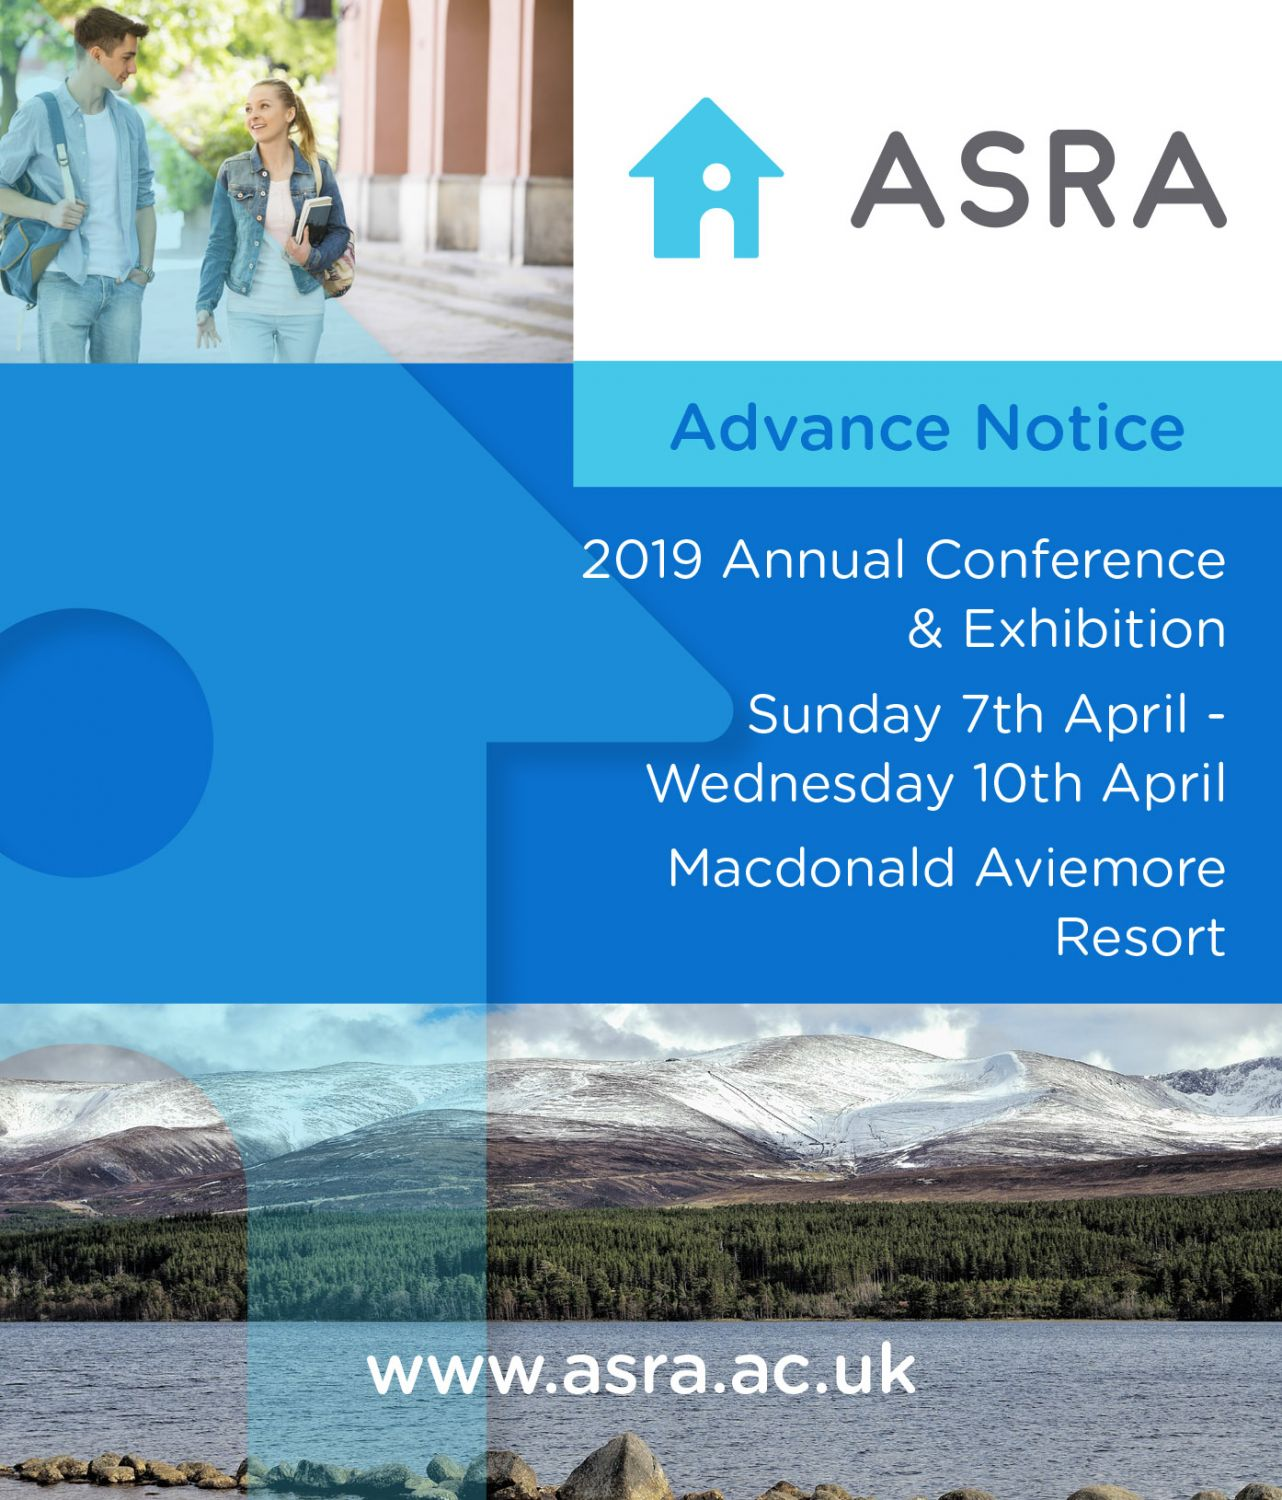 ASRA_2019_-_Advance_Notice.jpg